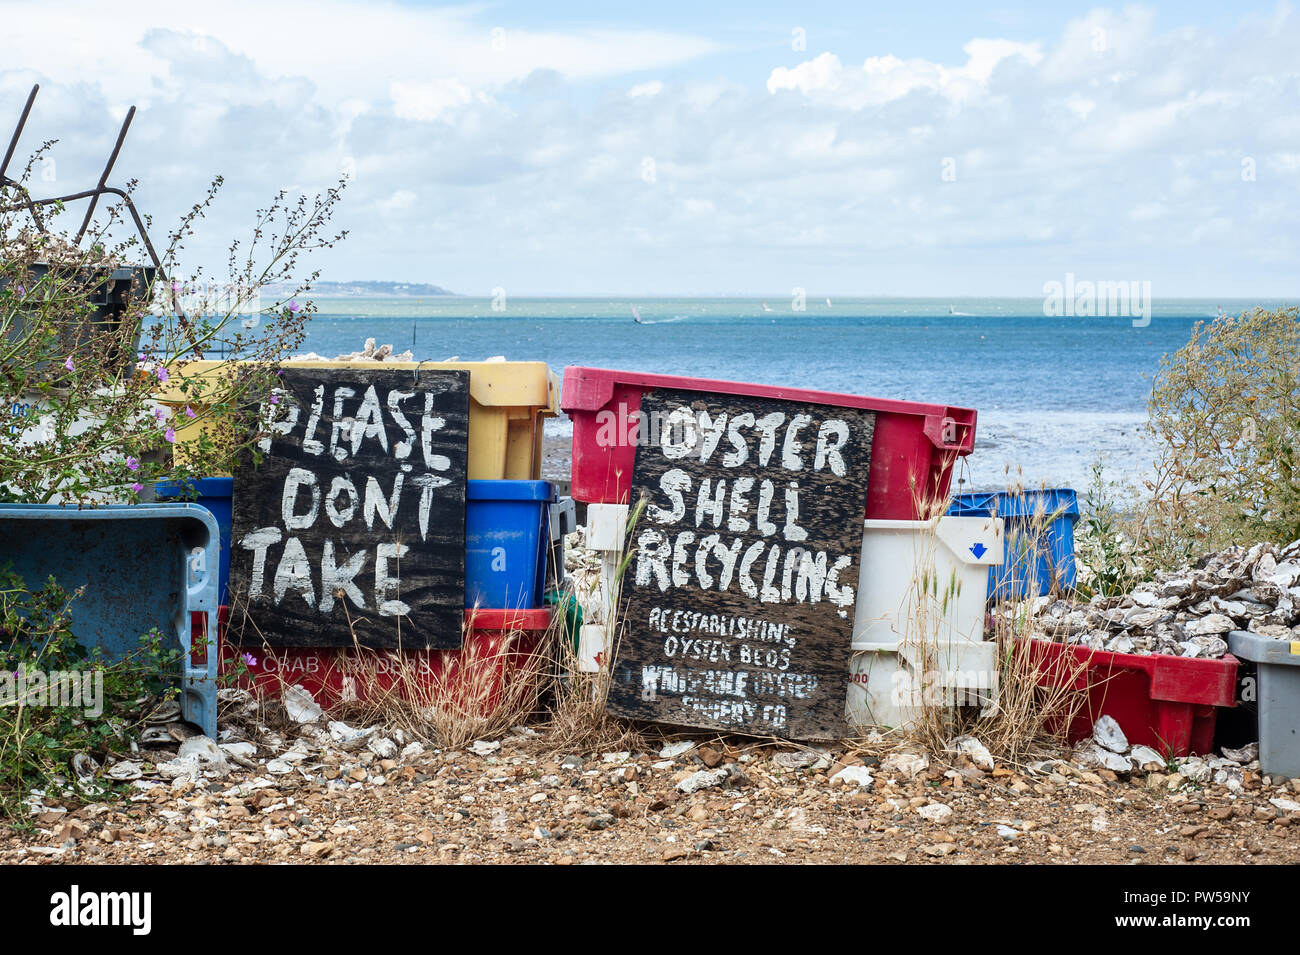 Whitstable beach, Kent, UK - August 25, 2012: Oyster Shell recycling baskets where oyster shells are piled up as an effort to re-establish oyster beds Stock Photo